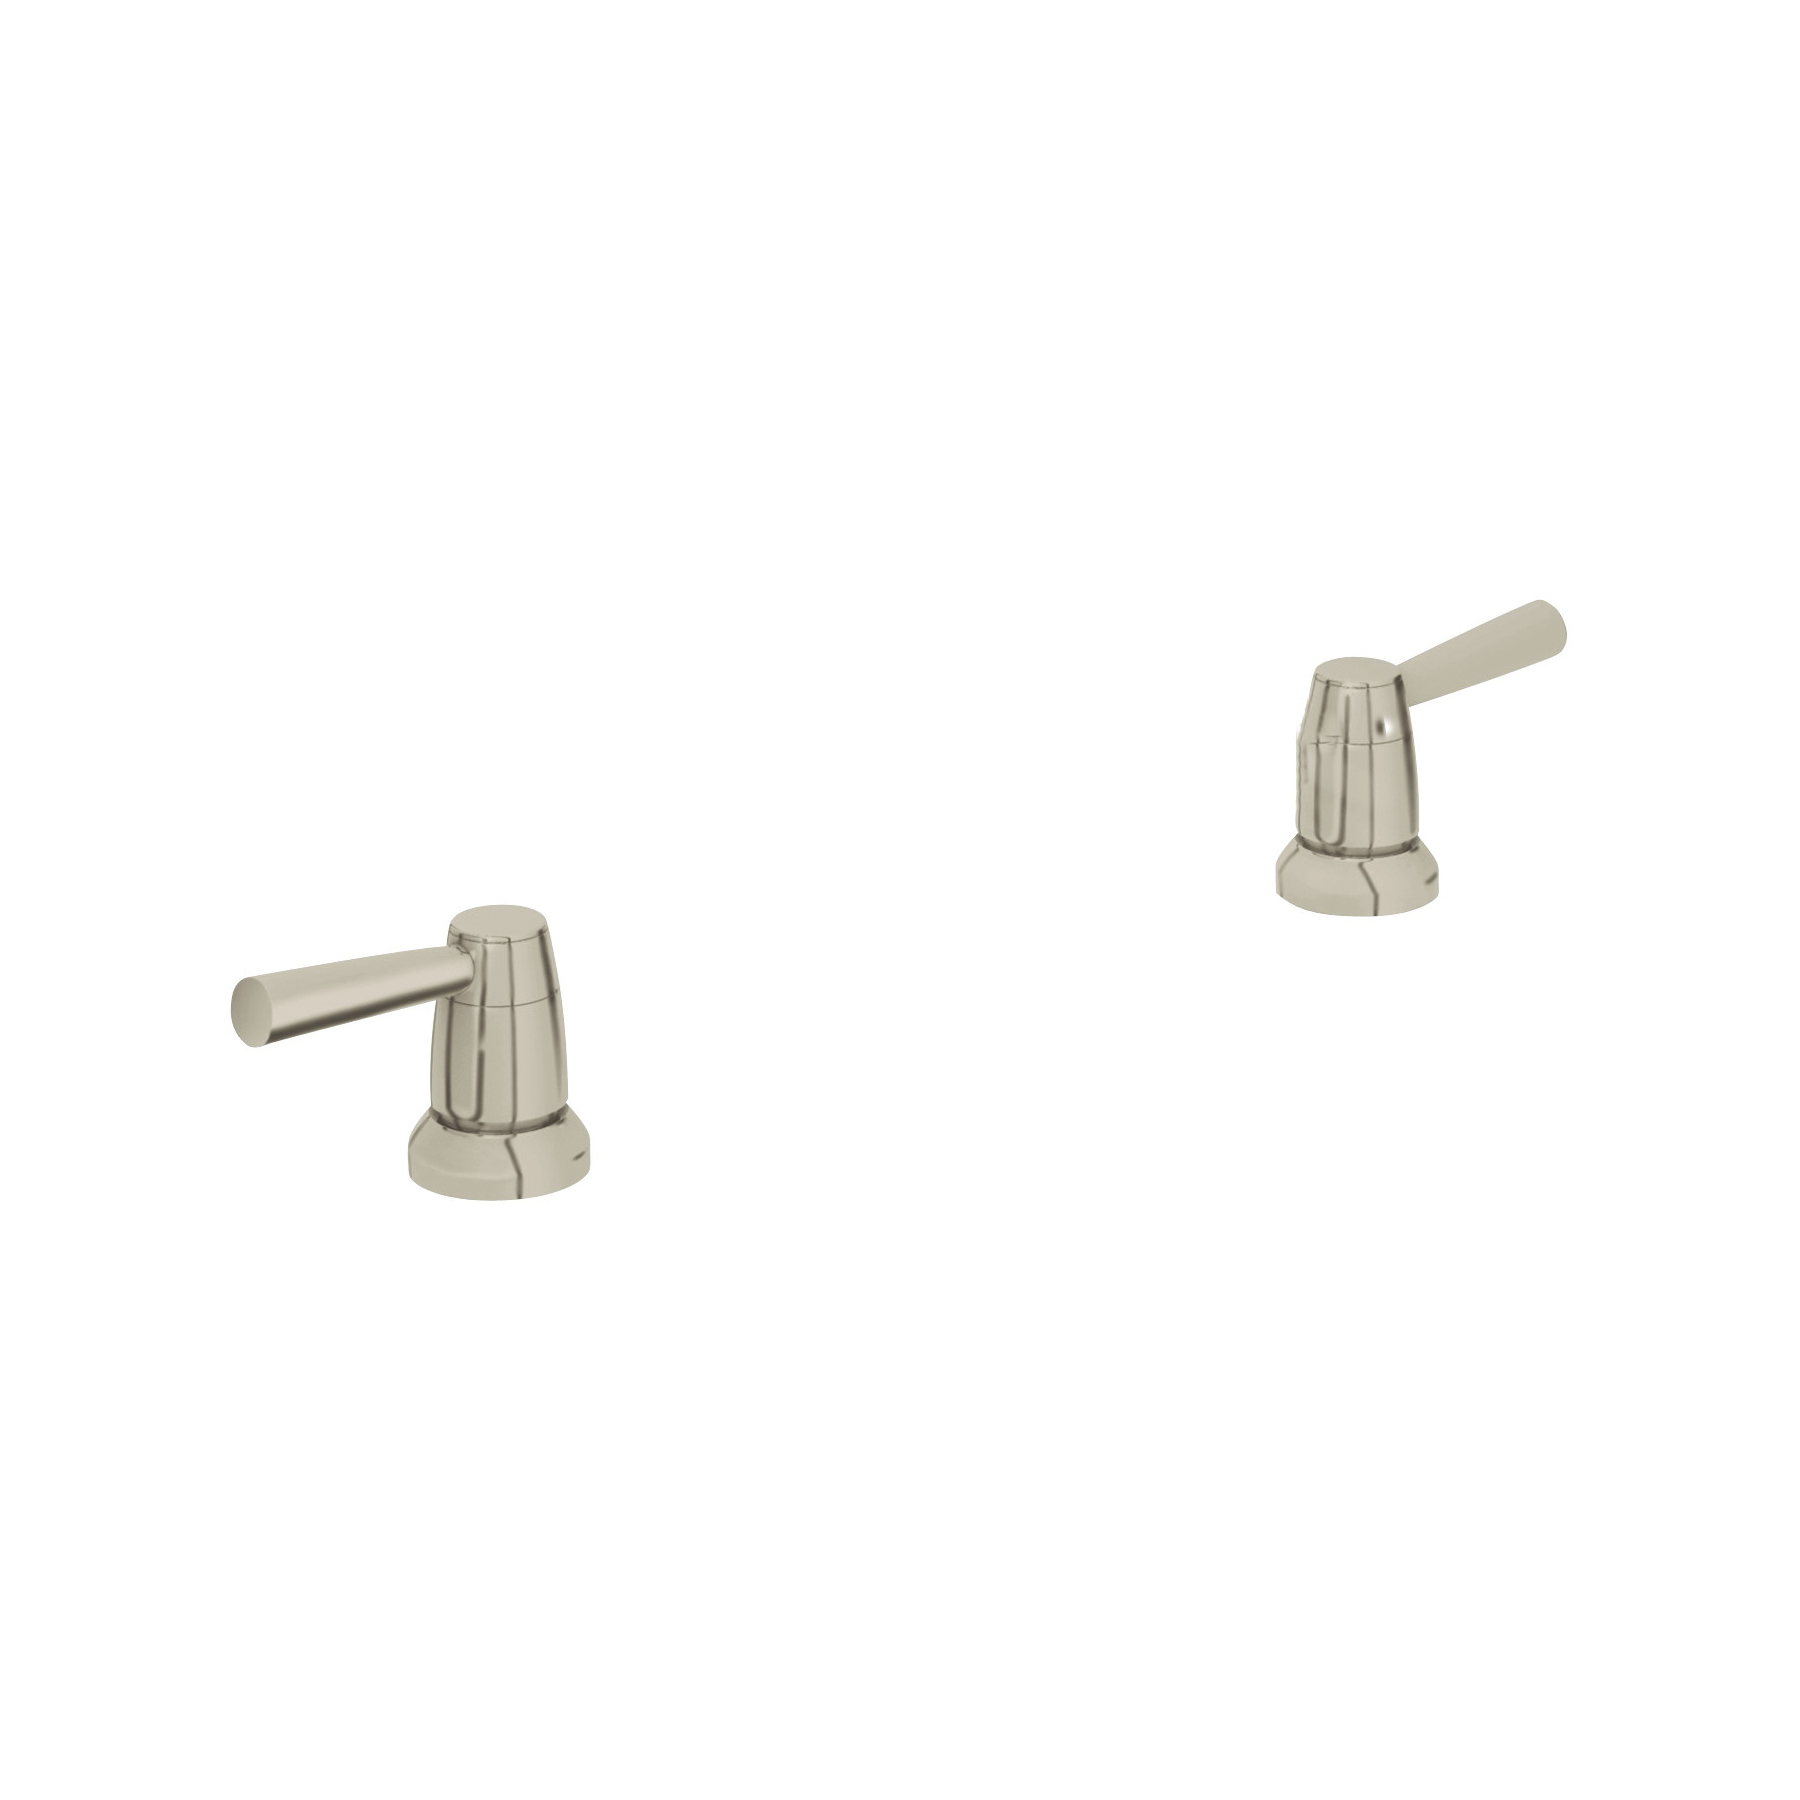 GROHE 18083EN0 Faucet Lever Handle, For Use With Widest Lavatory/Bidets and Roman Tub Faucet, Brass, Brushed Nickel, Import